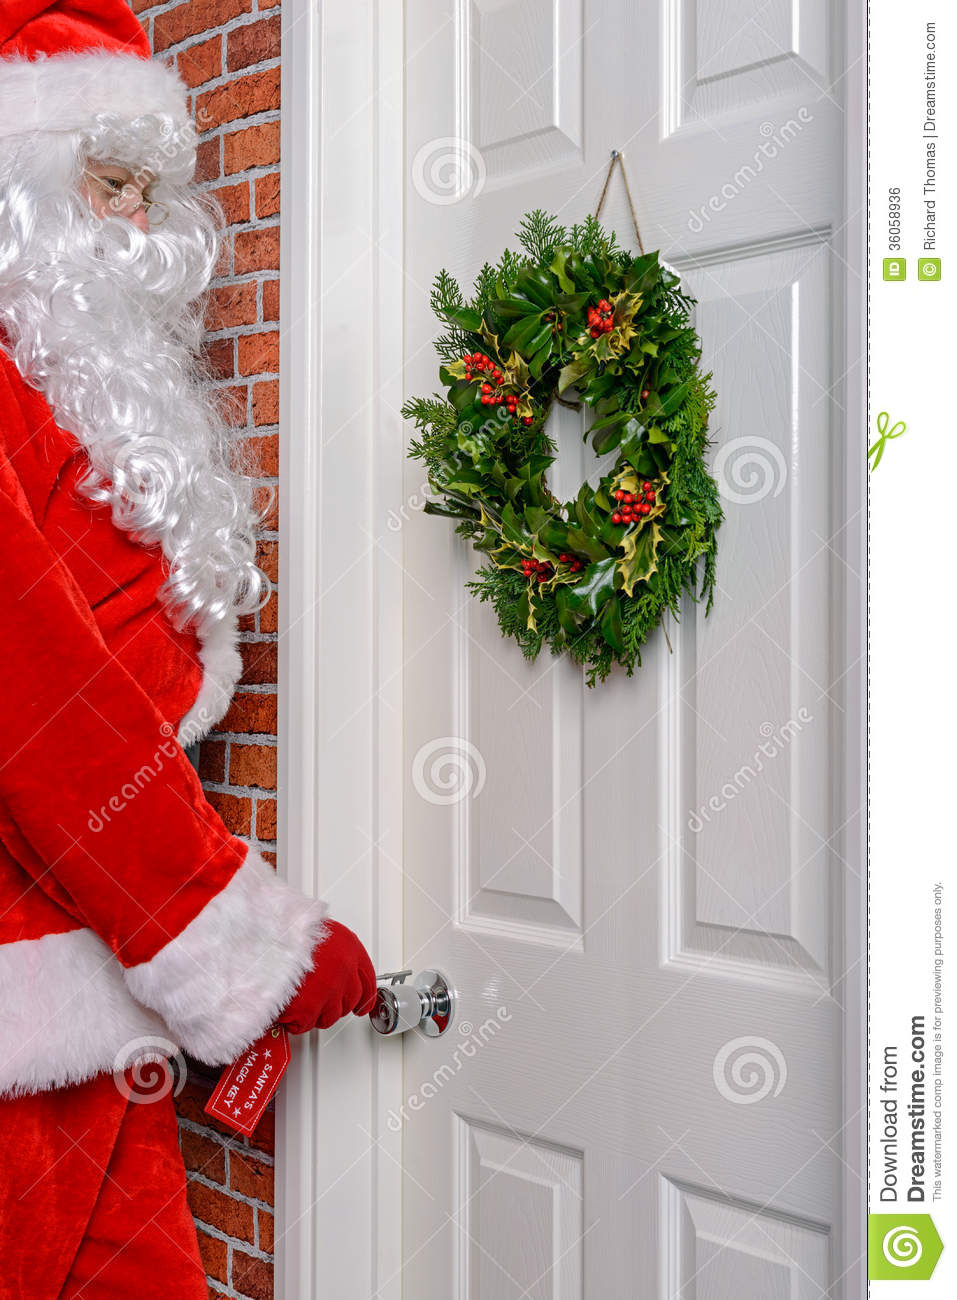 Santa Using His Magic Key Stock Photo Image Of Lock